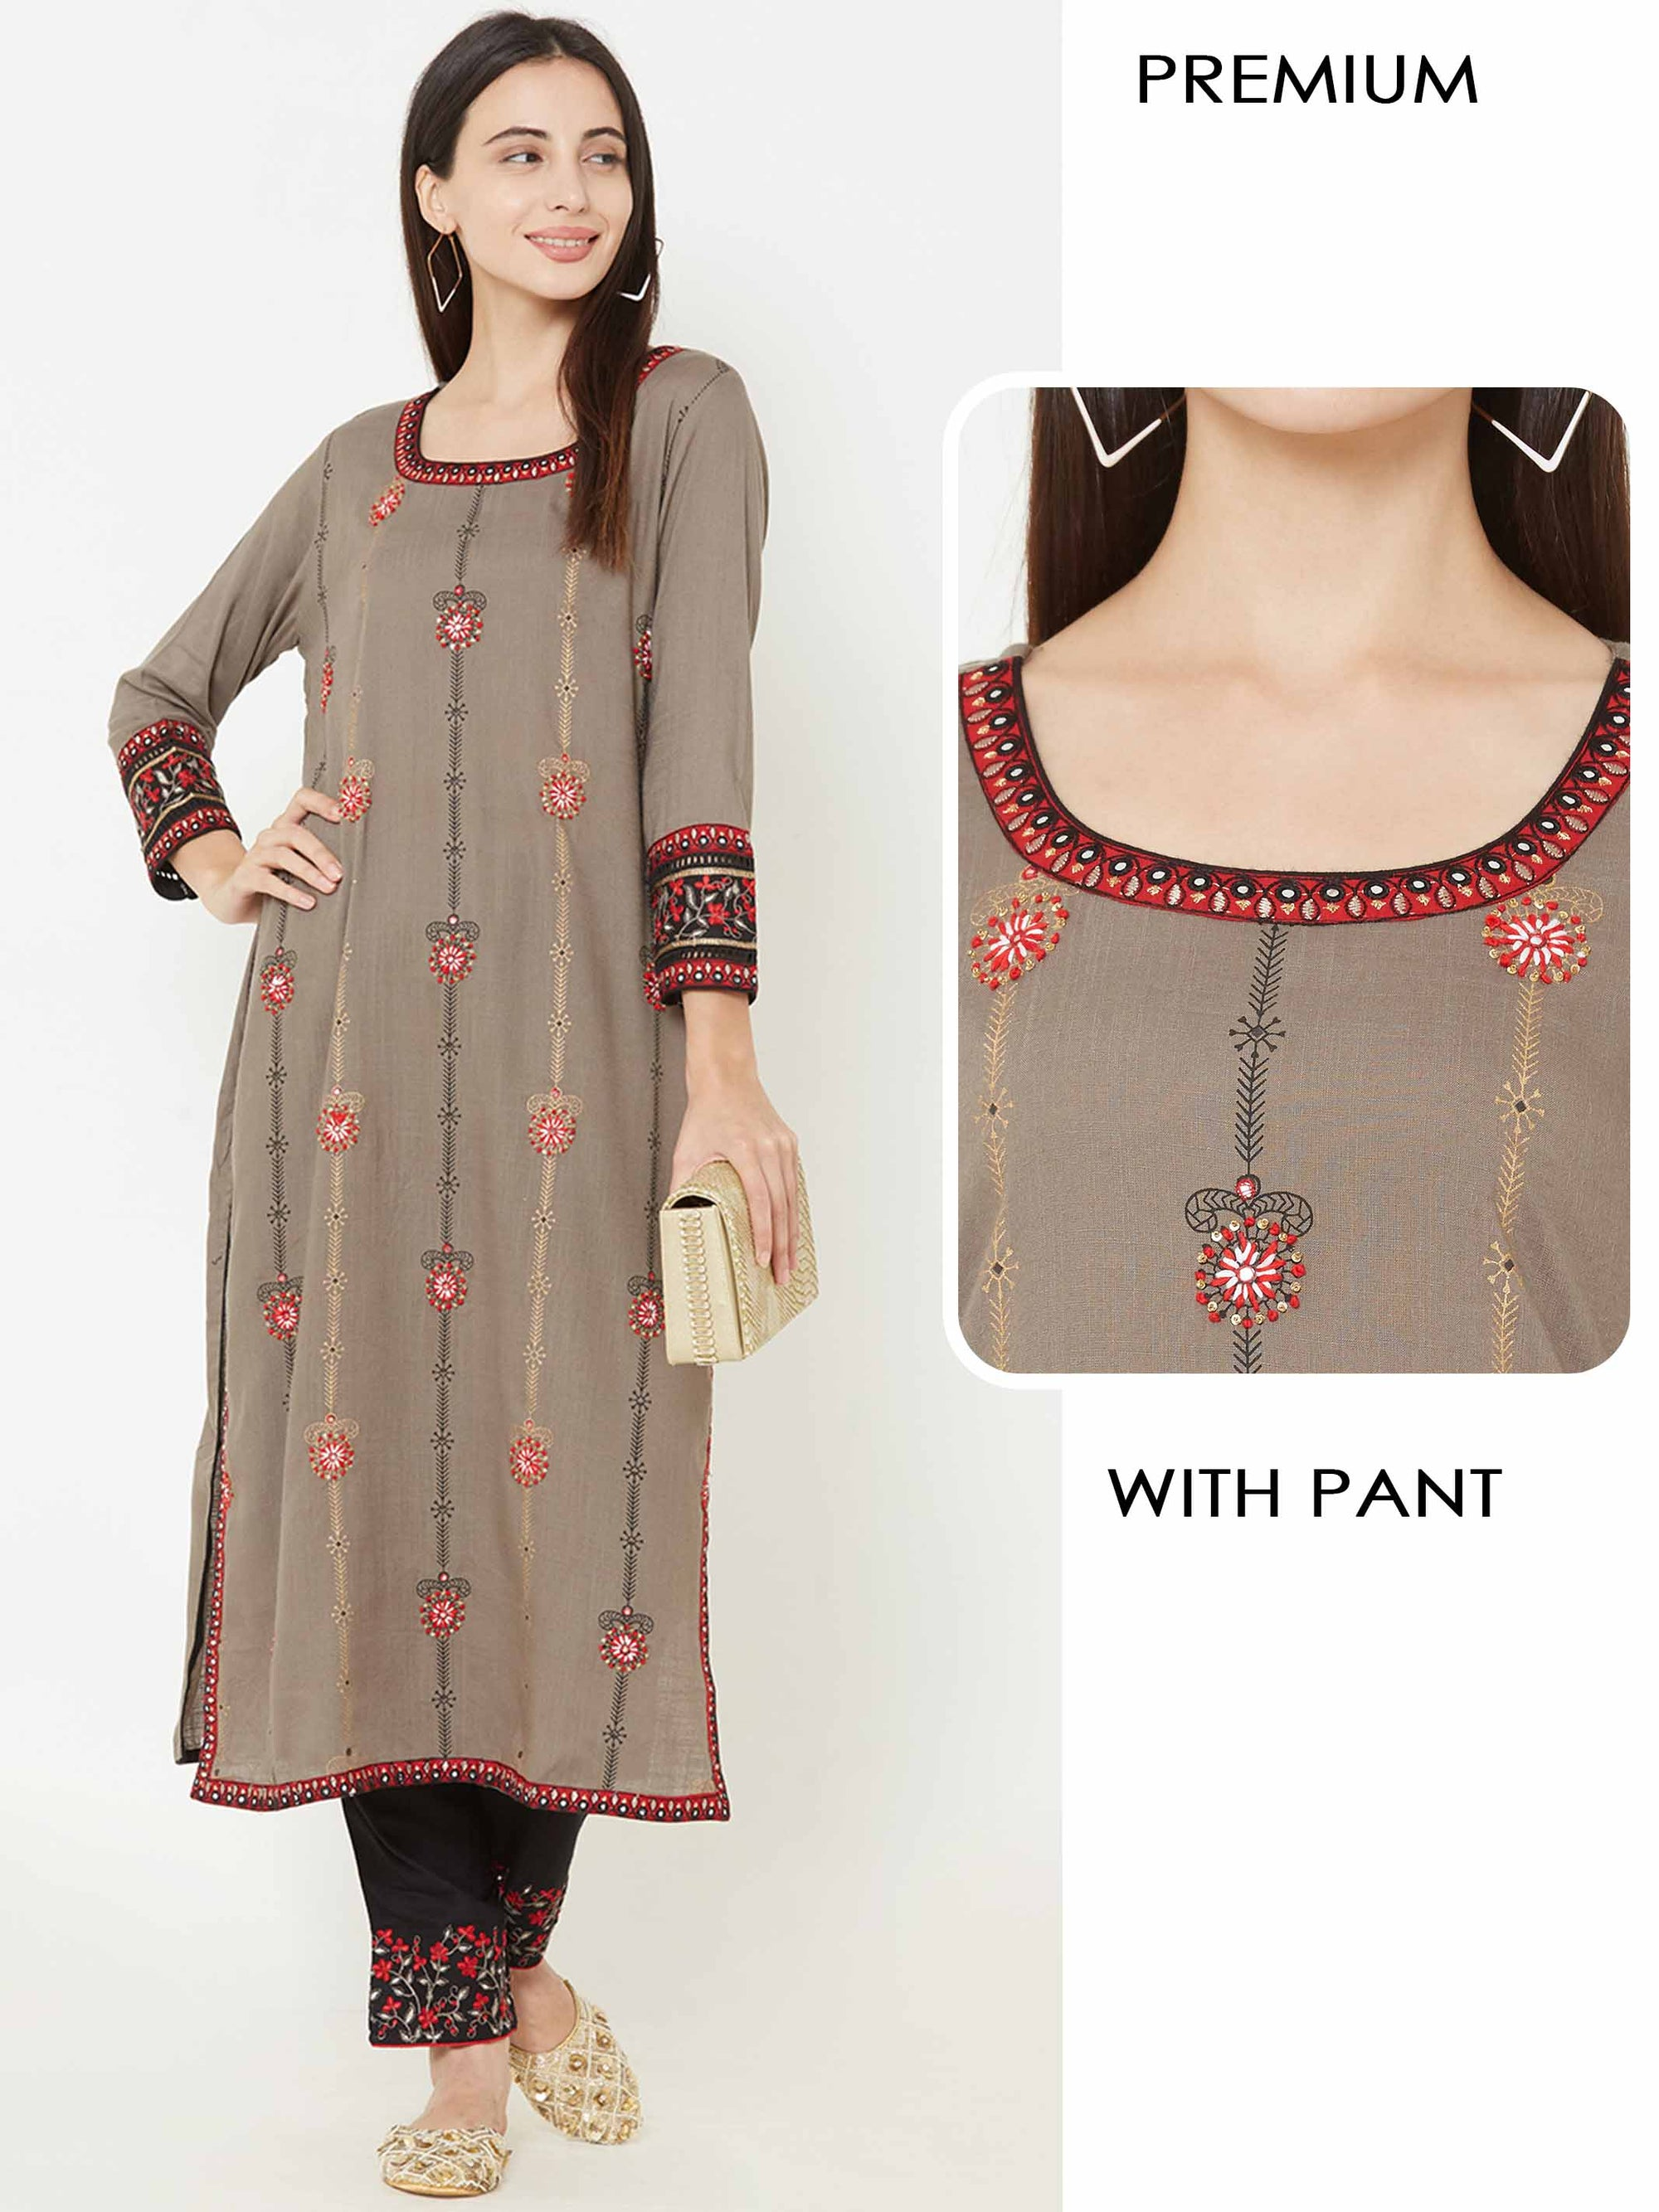 Floral Printed & Embroidered Kurta with Floral Embroidered Pant – Brown